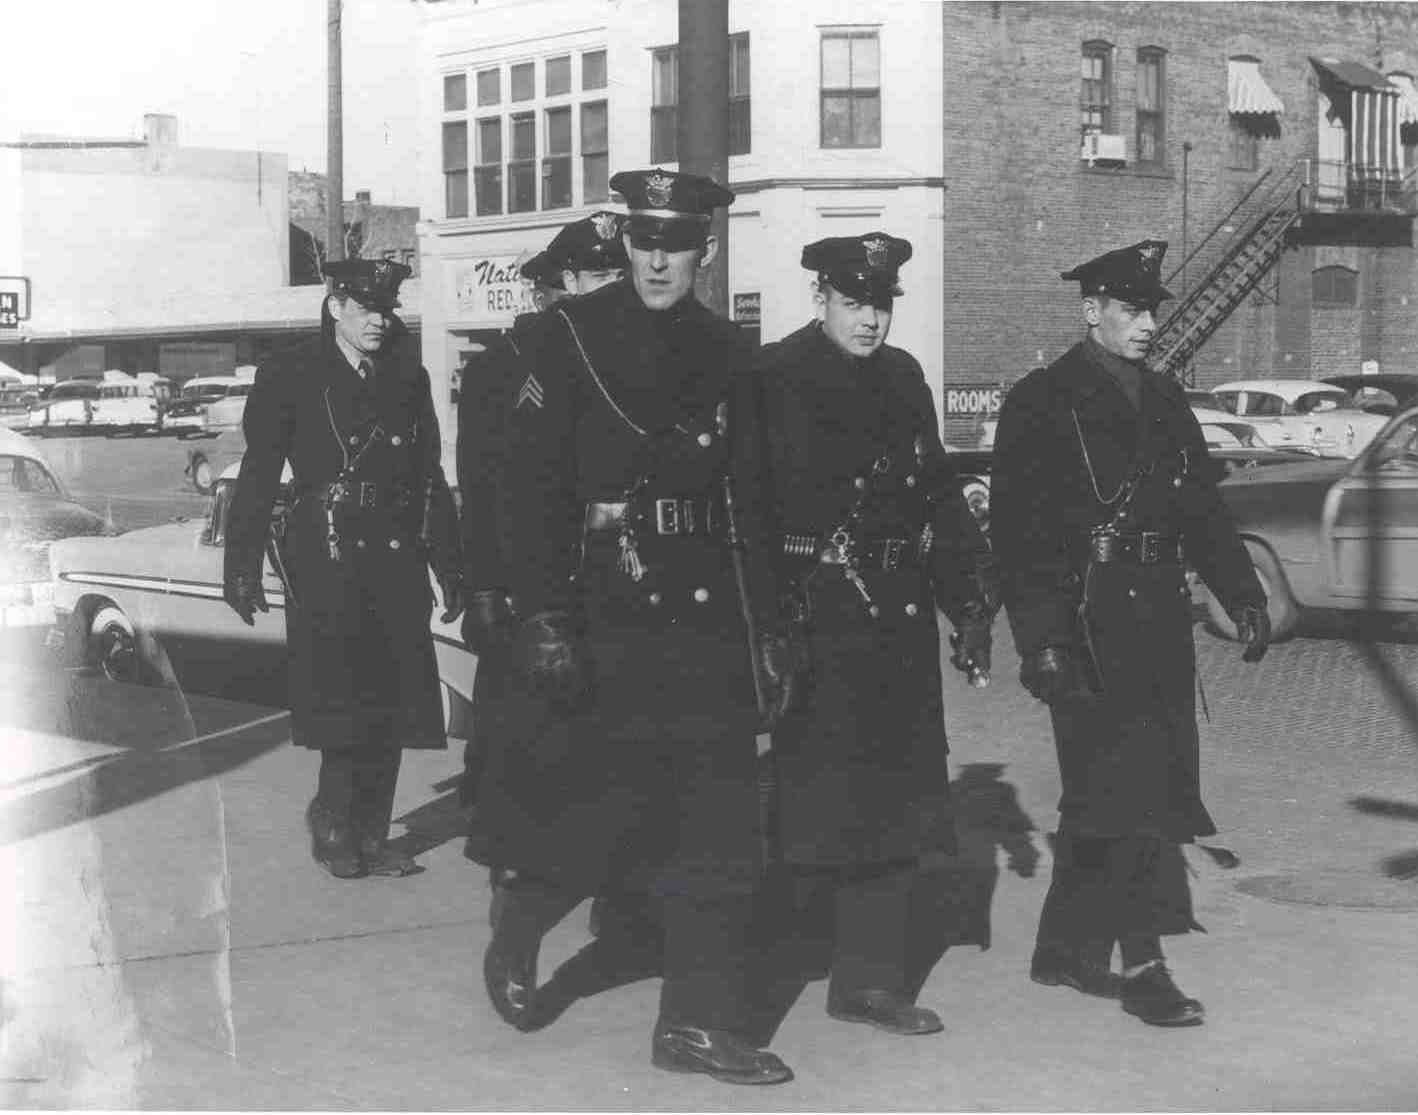 Losangeles Lapd Police La 1950s Uniforms I Wonder Why They Don T Have The Coats Anymore La Police Department Police Crime Los Angeles History